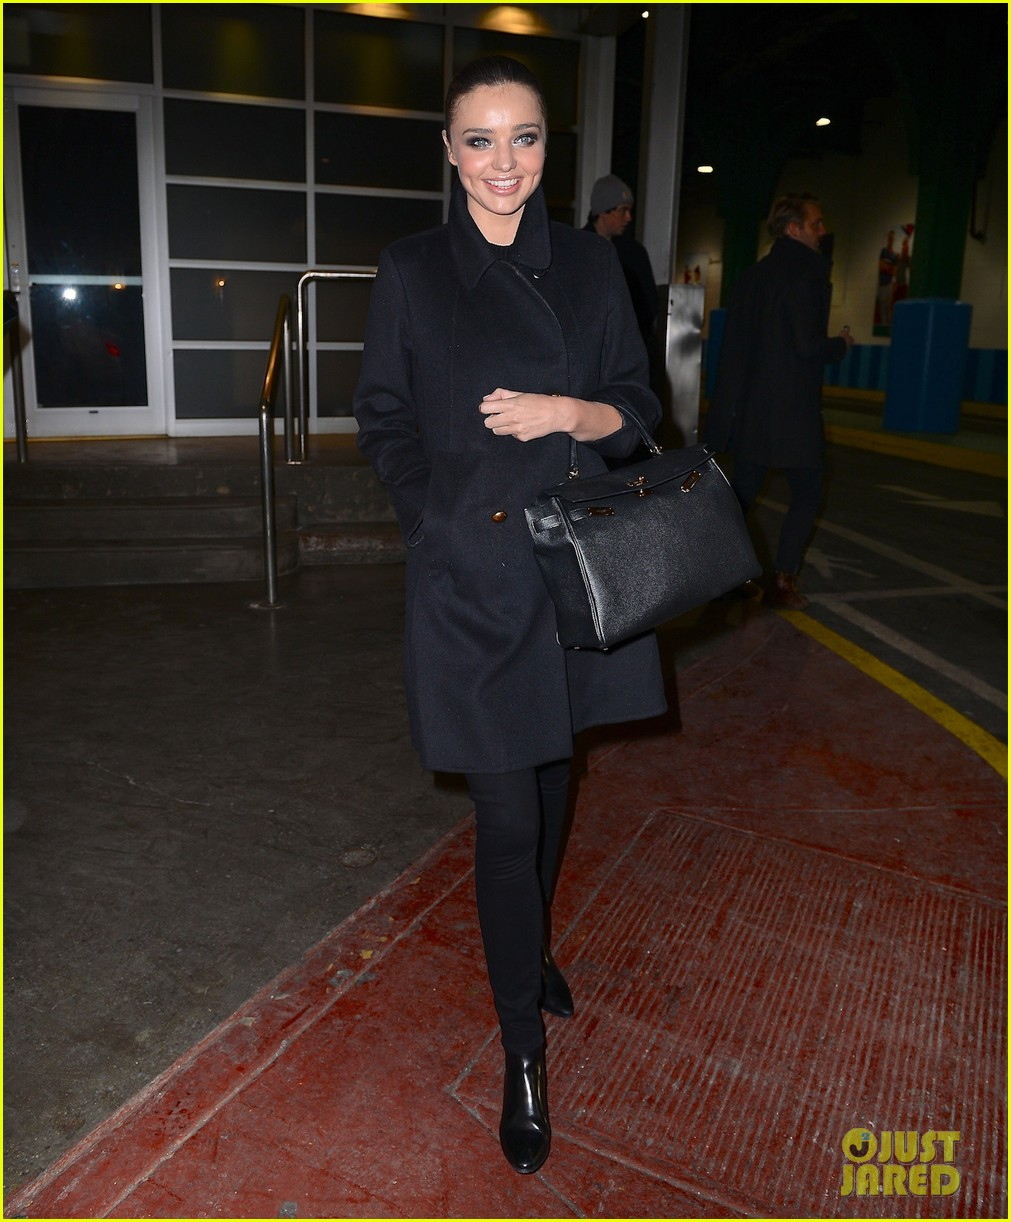 orlando bloom miranda kerr step out separately after his new reportedly false romance rumors 033044651